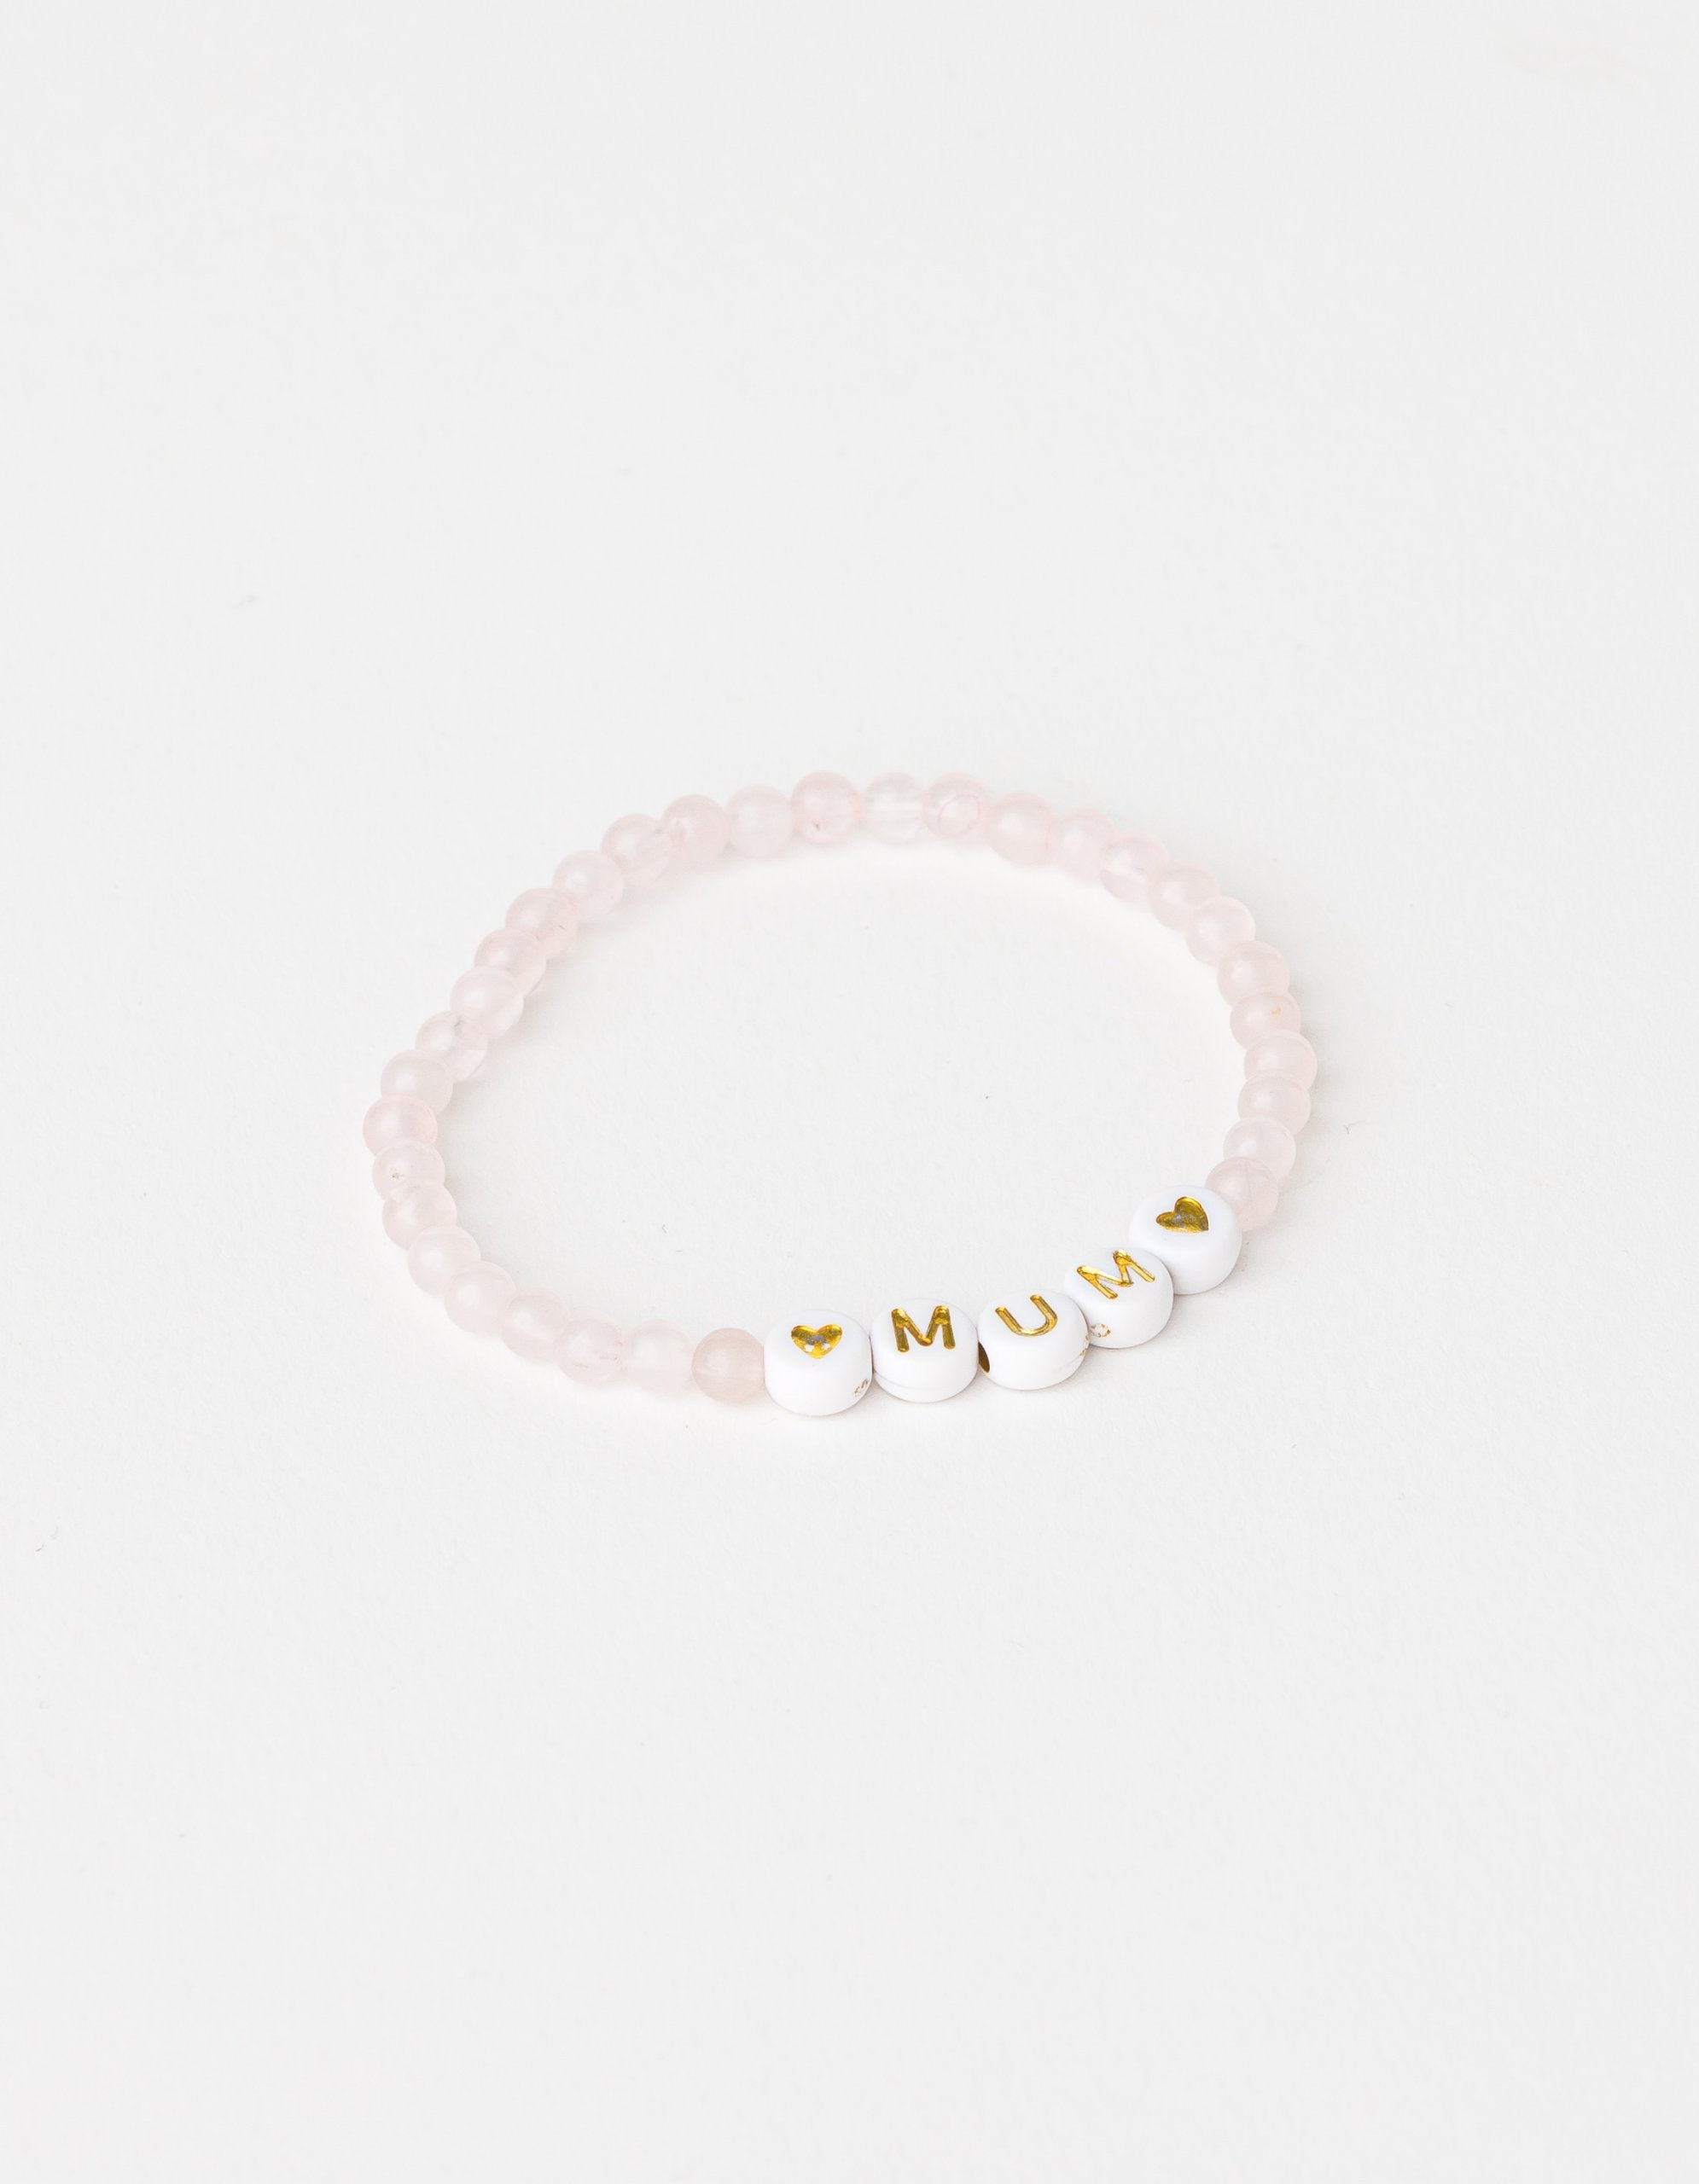 ROSE QUARTZ BEAD BRACELET -MUM